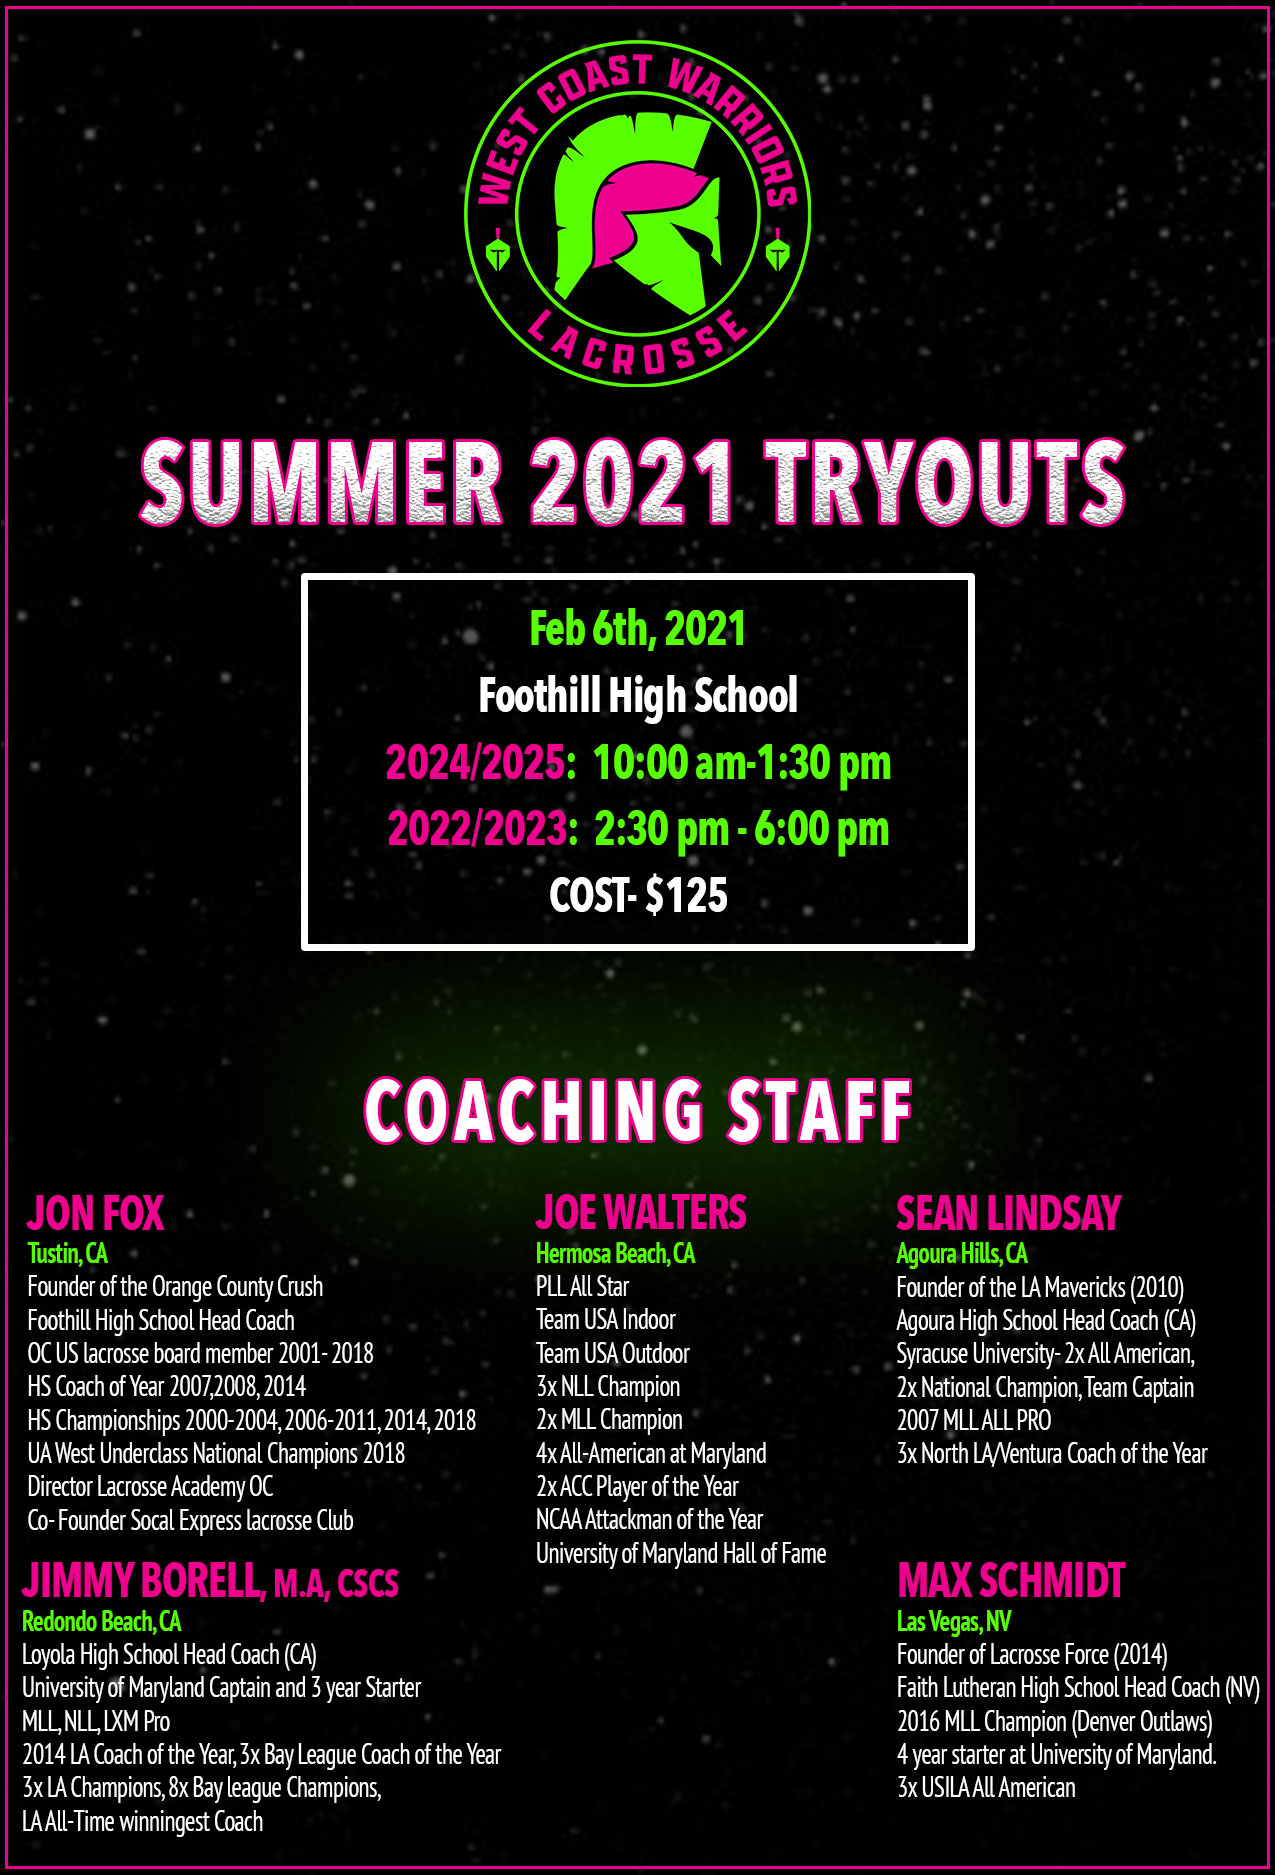 West Coast Warriors Announce Summer 2021 Tryouts